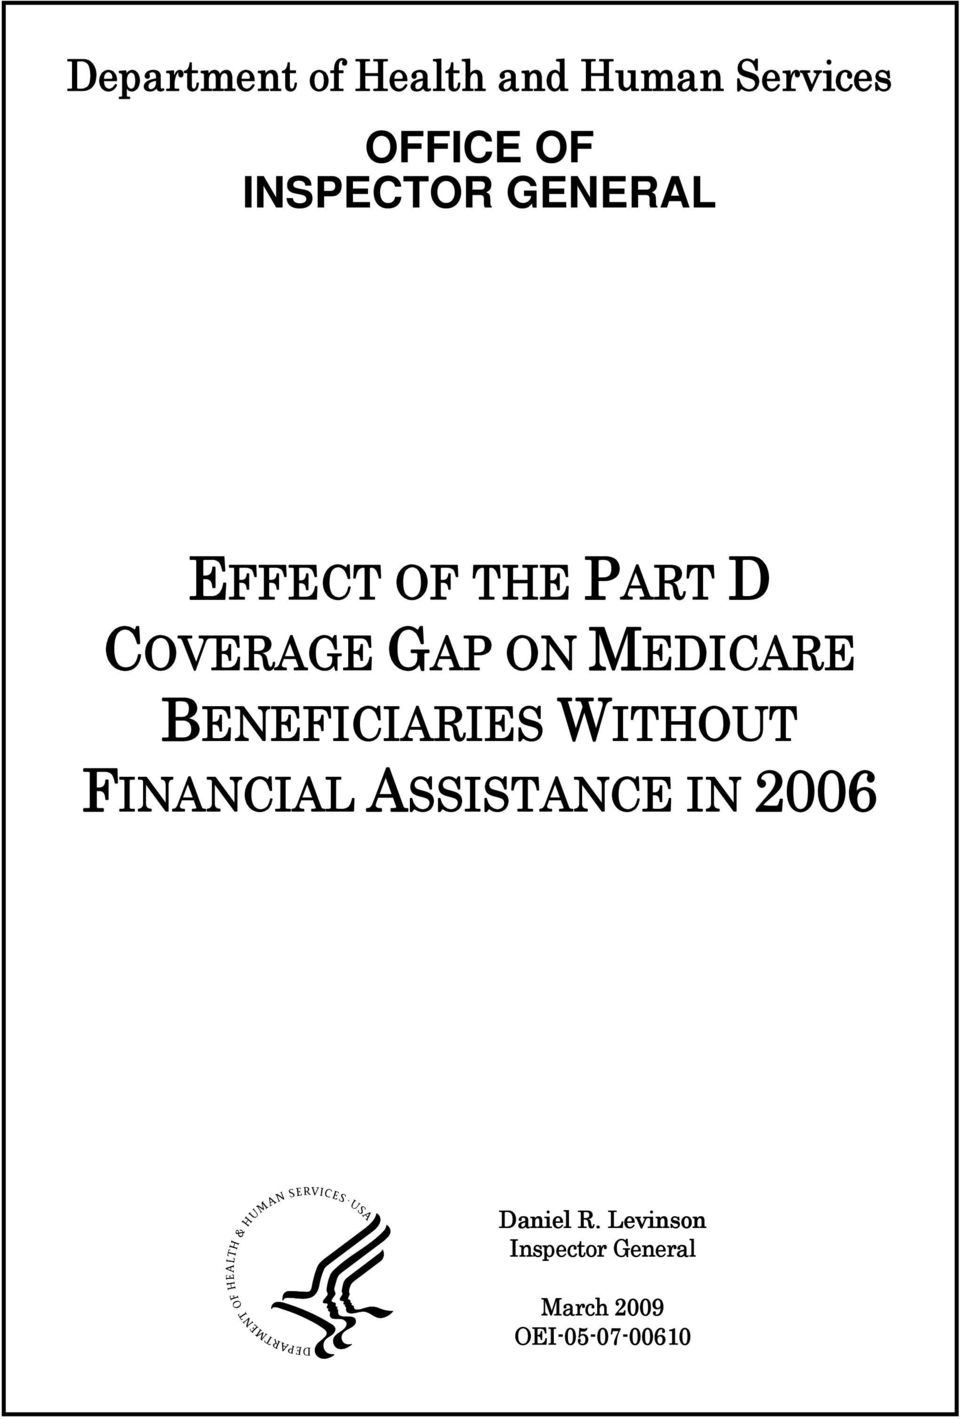 ON MEDICARE BENEFICIARIES WITHOUT FINANCIAL